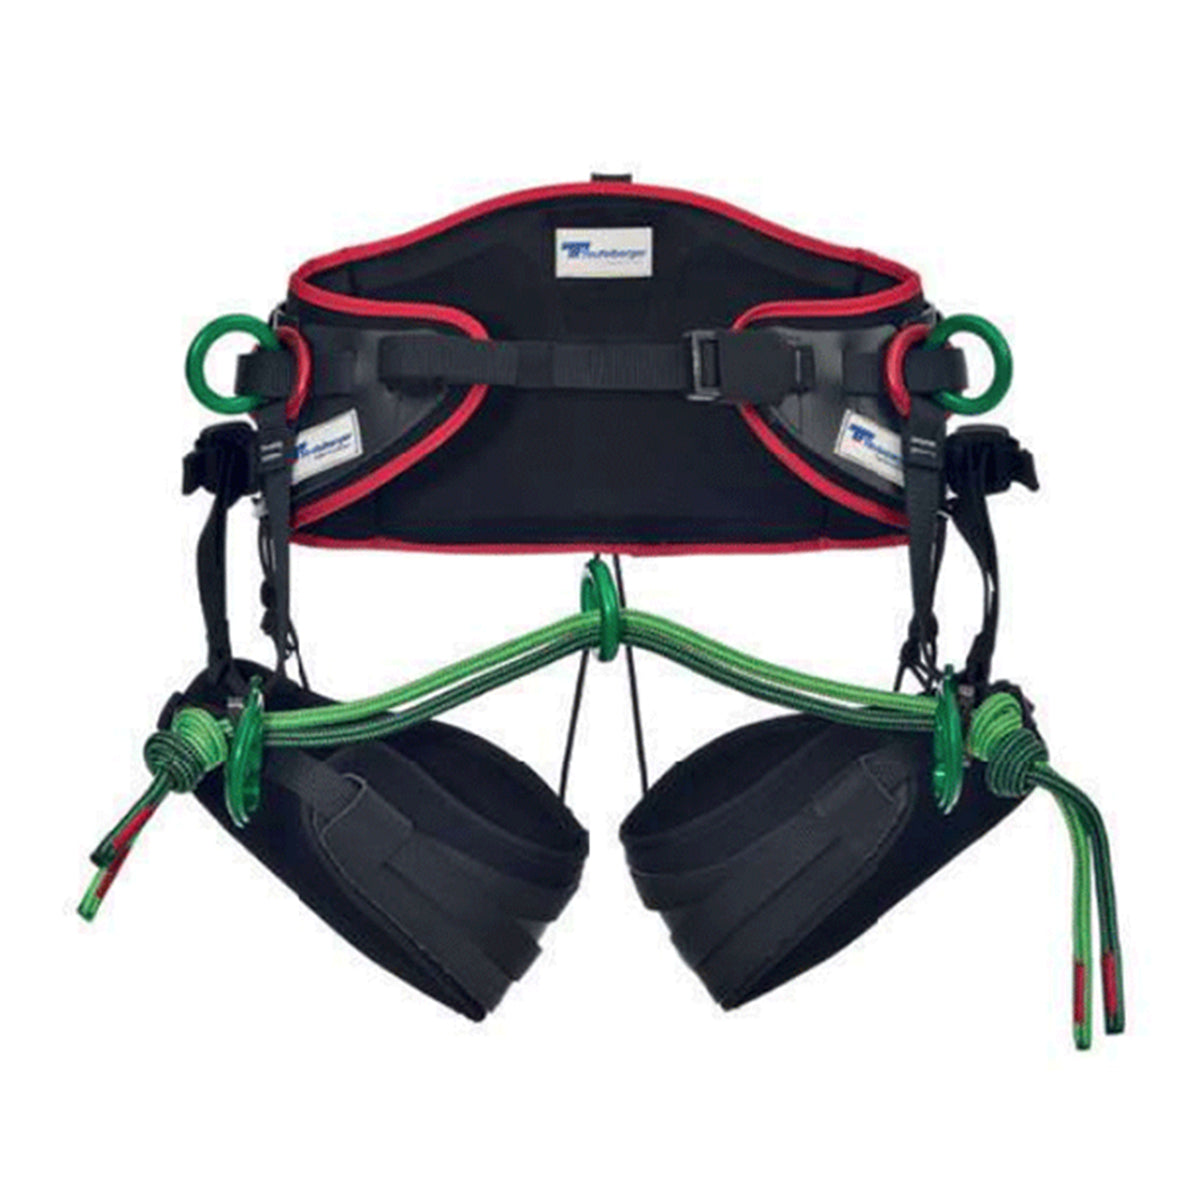 54bae6f6075 Teufelberger Treemotion Evo Harness for Tree Climbing